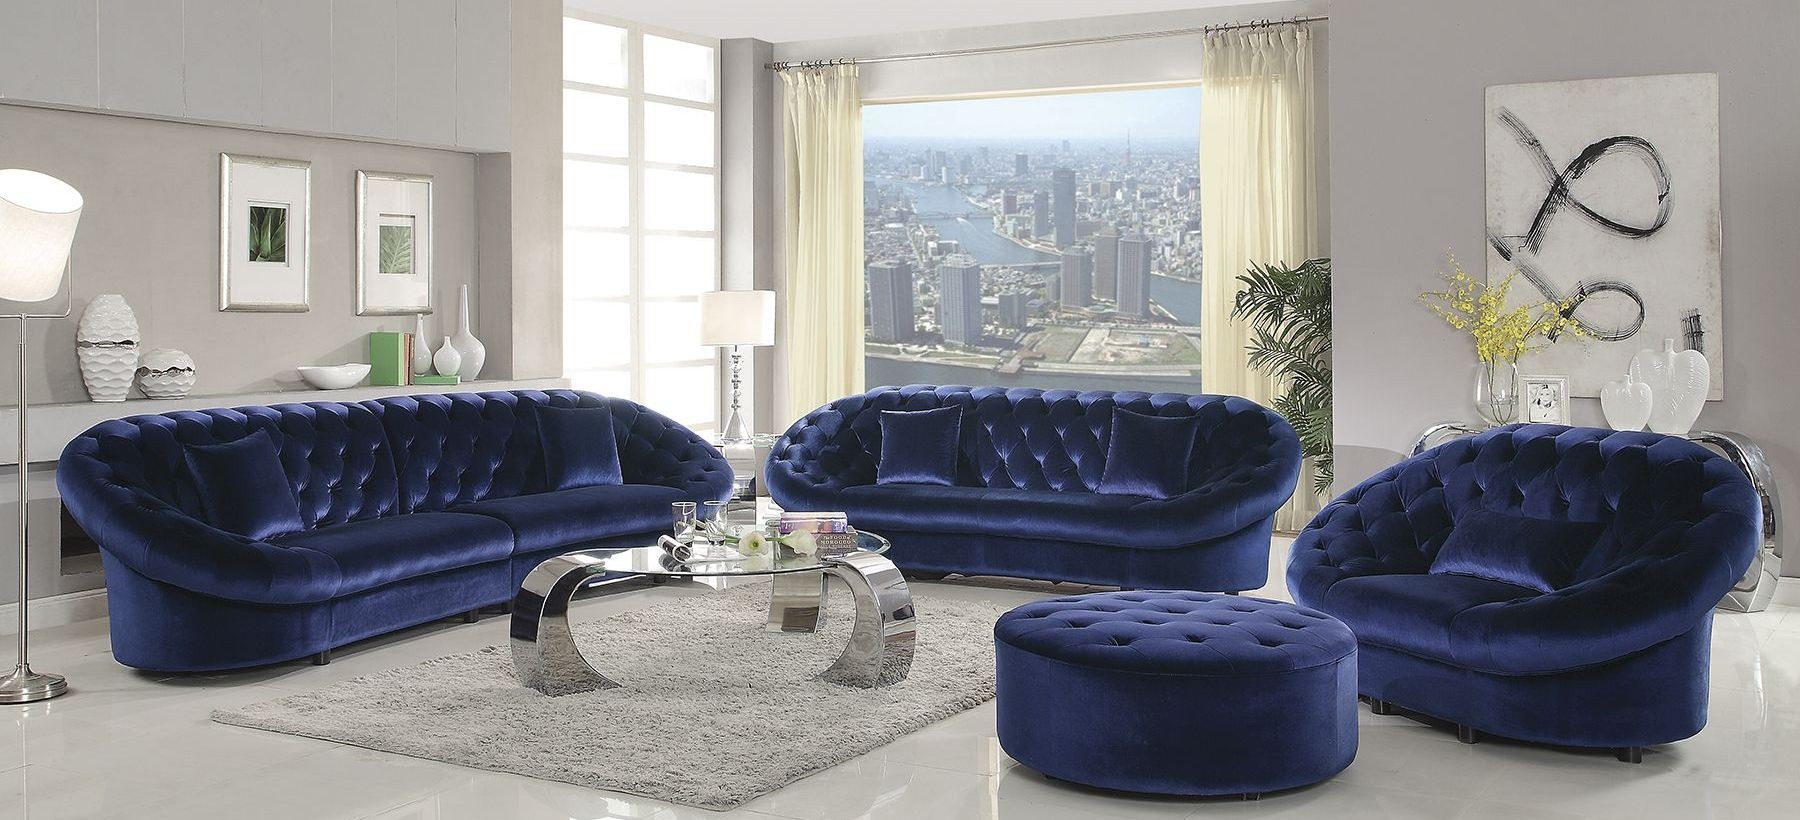 romanus royal blue velvet living room set 511042 coaster